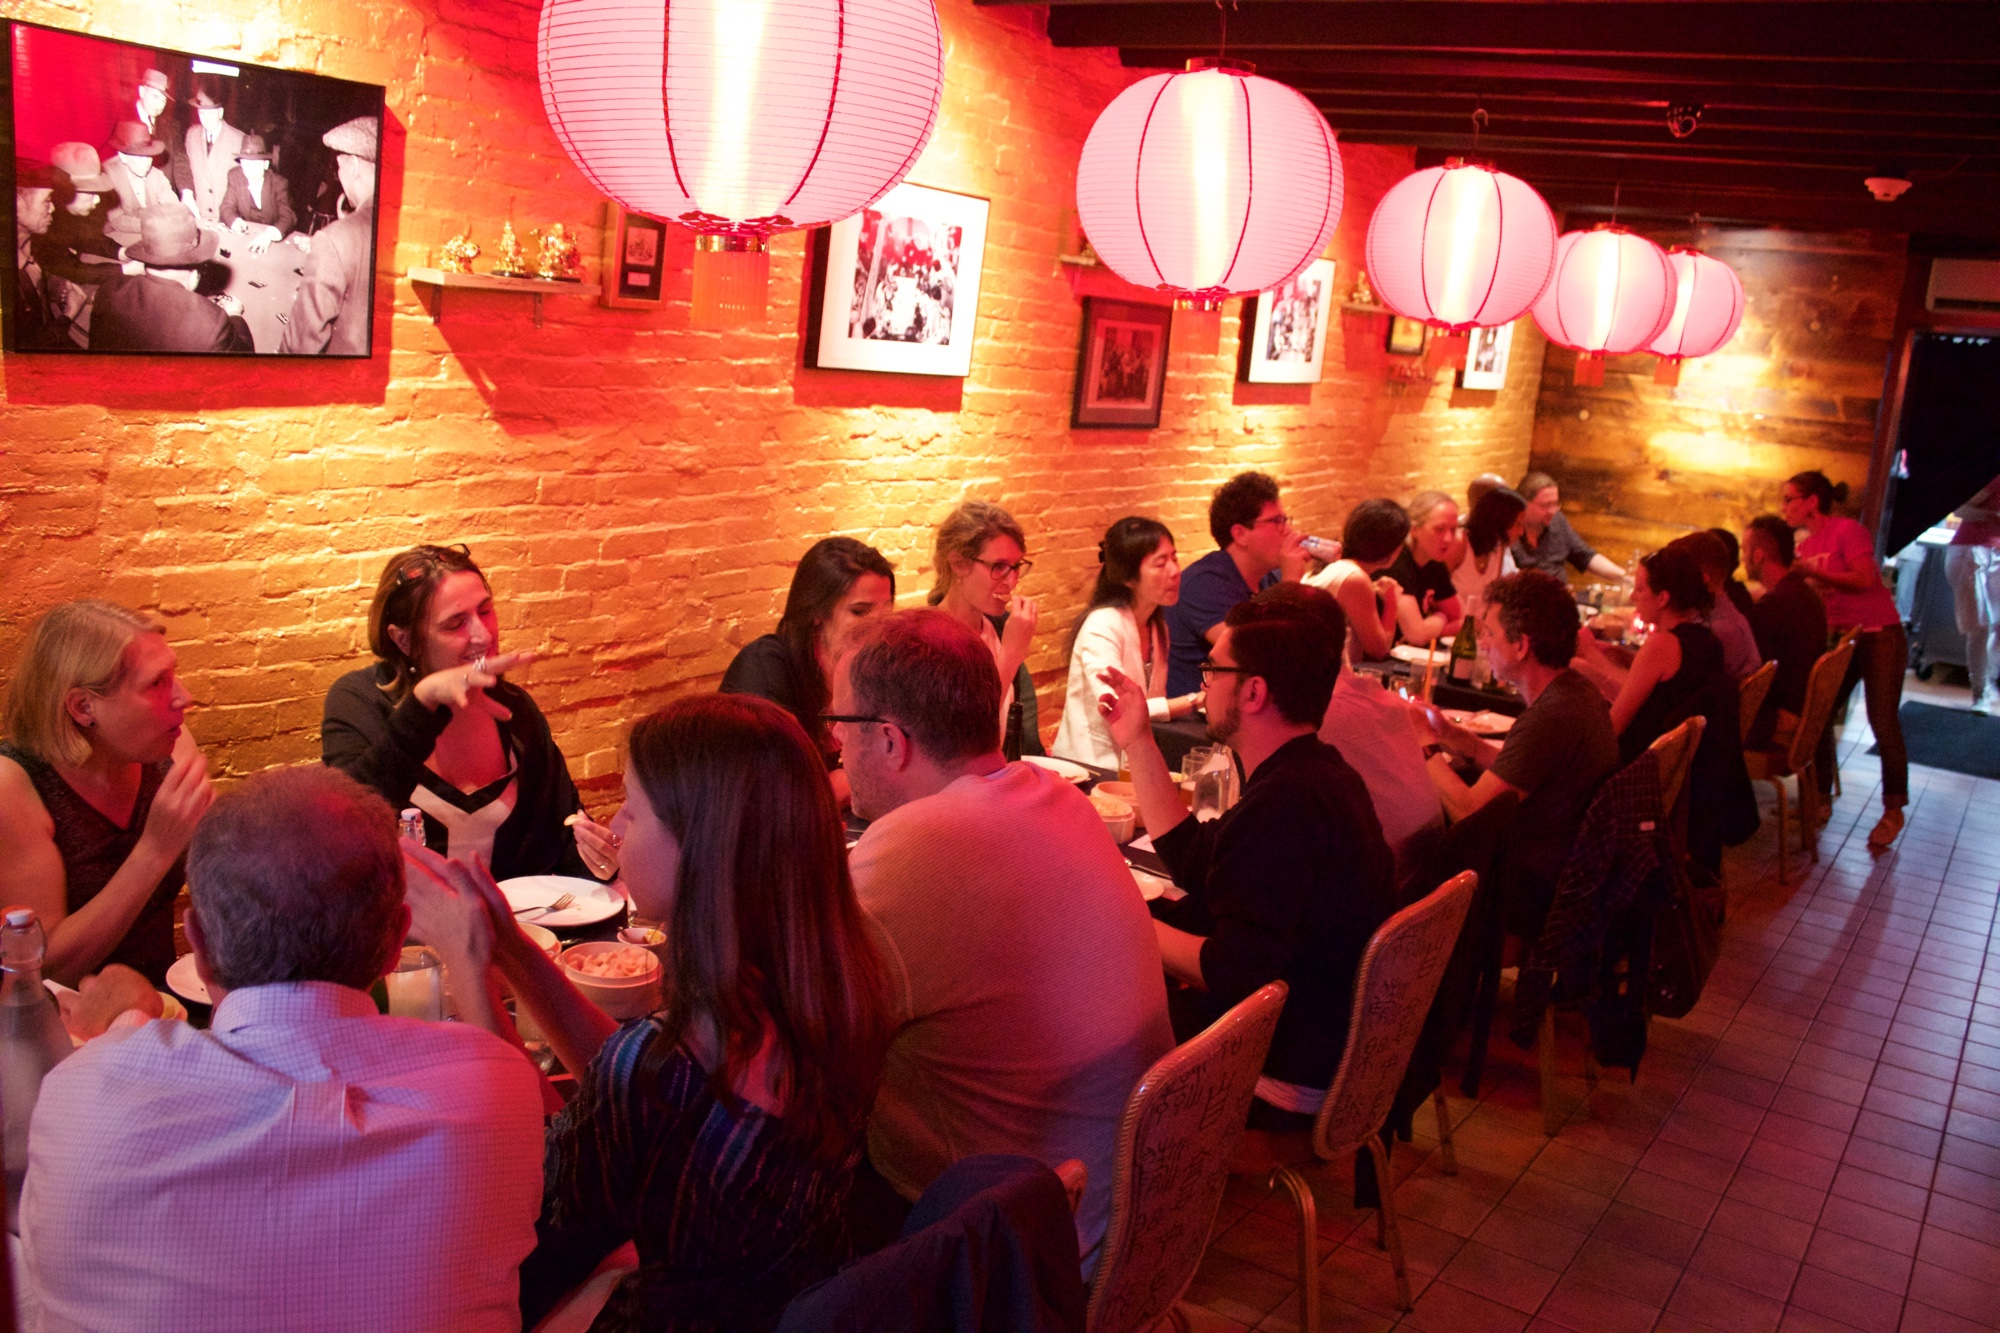 The scene at Kaki Lima's pop up at Best Little Restaurant in Chinatown on July 11.